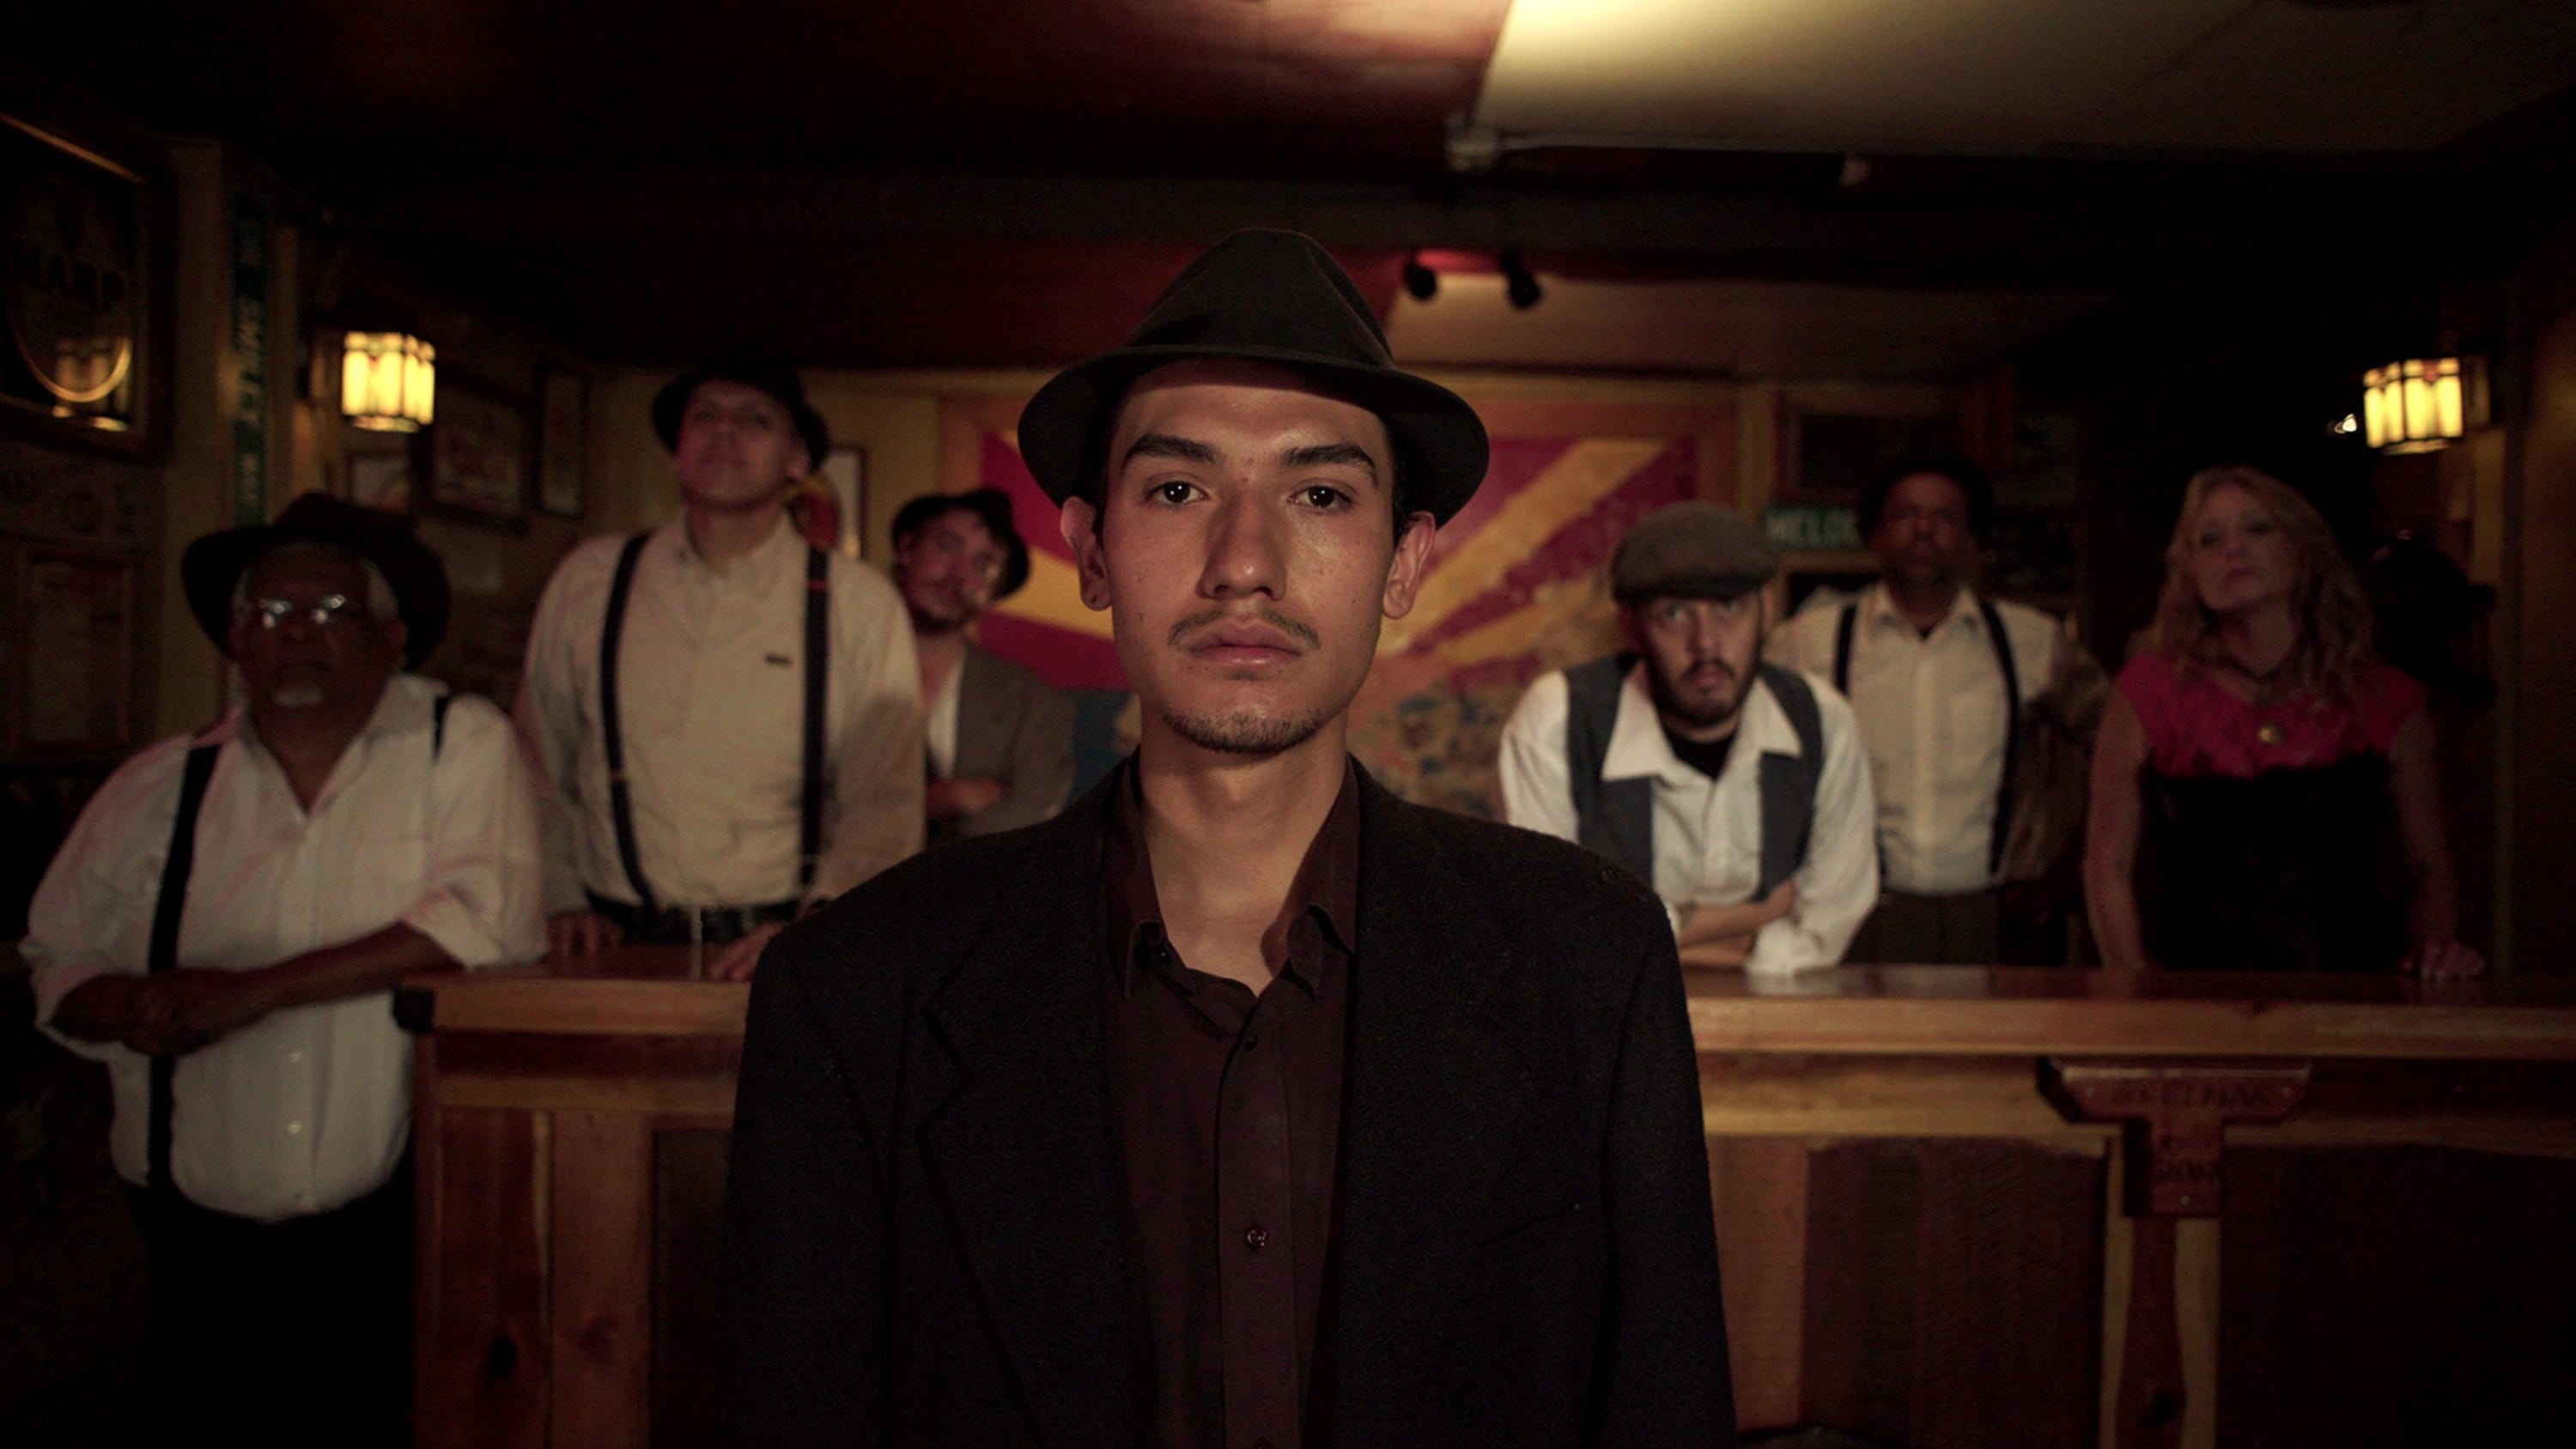 """Fernando Serrano portrays a miner on strike along with other Bisbee, Ariz., residents in the documentary """"Bisbee '17,"""" a re-creation of the event when 1,200 immigrant miners were deported from their Mexico border town 100 years ago."""